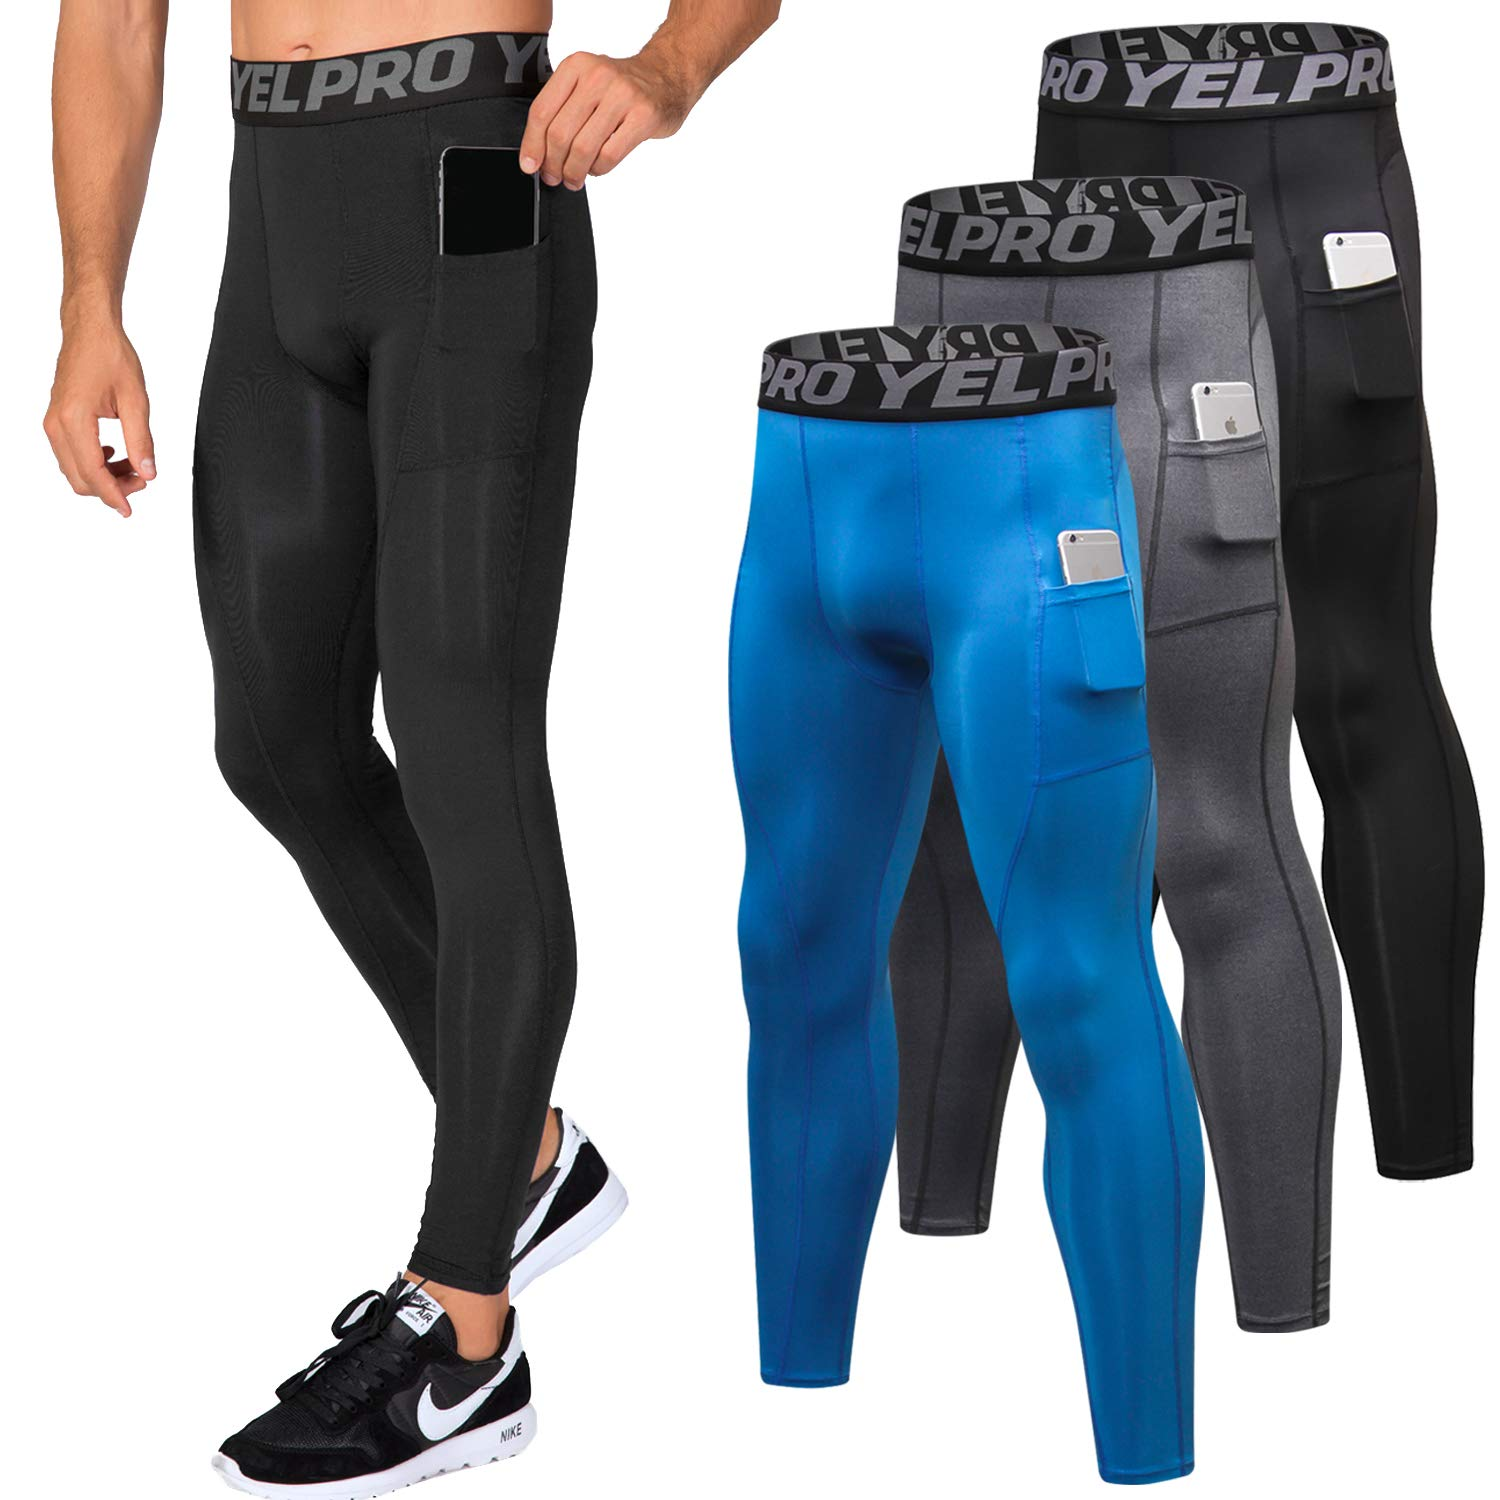 Lavento Men's Compression Pants Baselayer Cool Dry Pocket Running Ankle Leggings Active Tights (3 Pack-3911 Black/Gray/Blue,Small) by Lavento